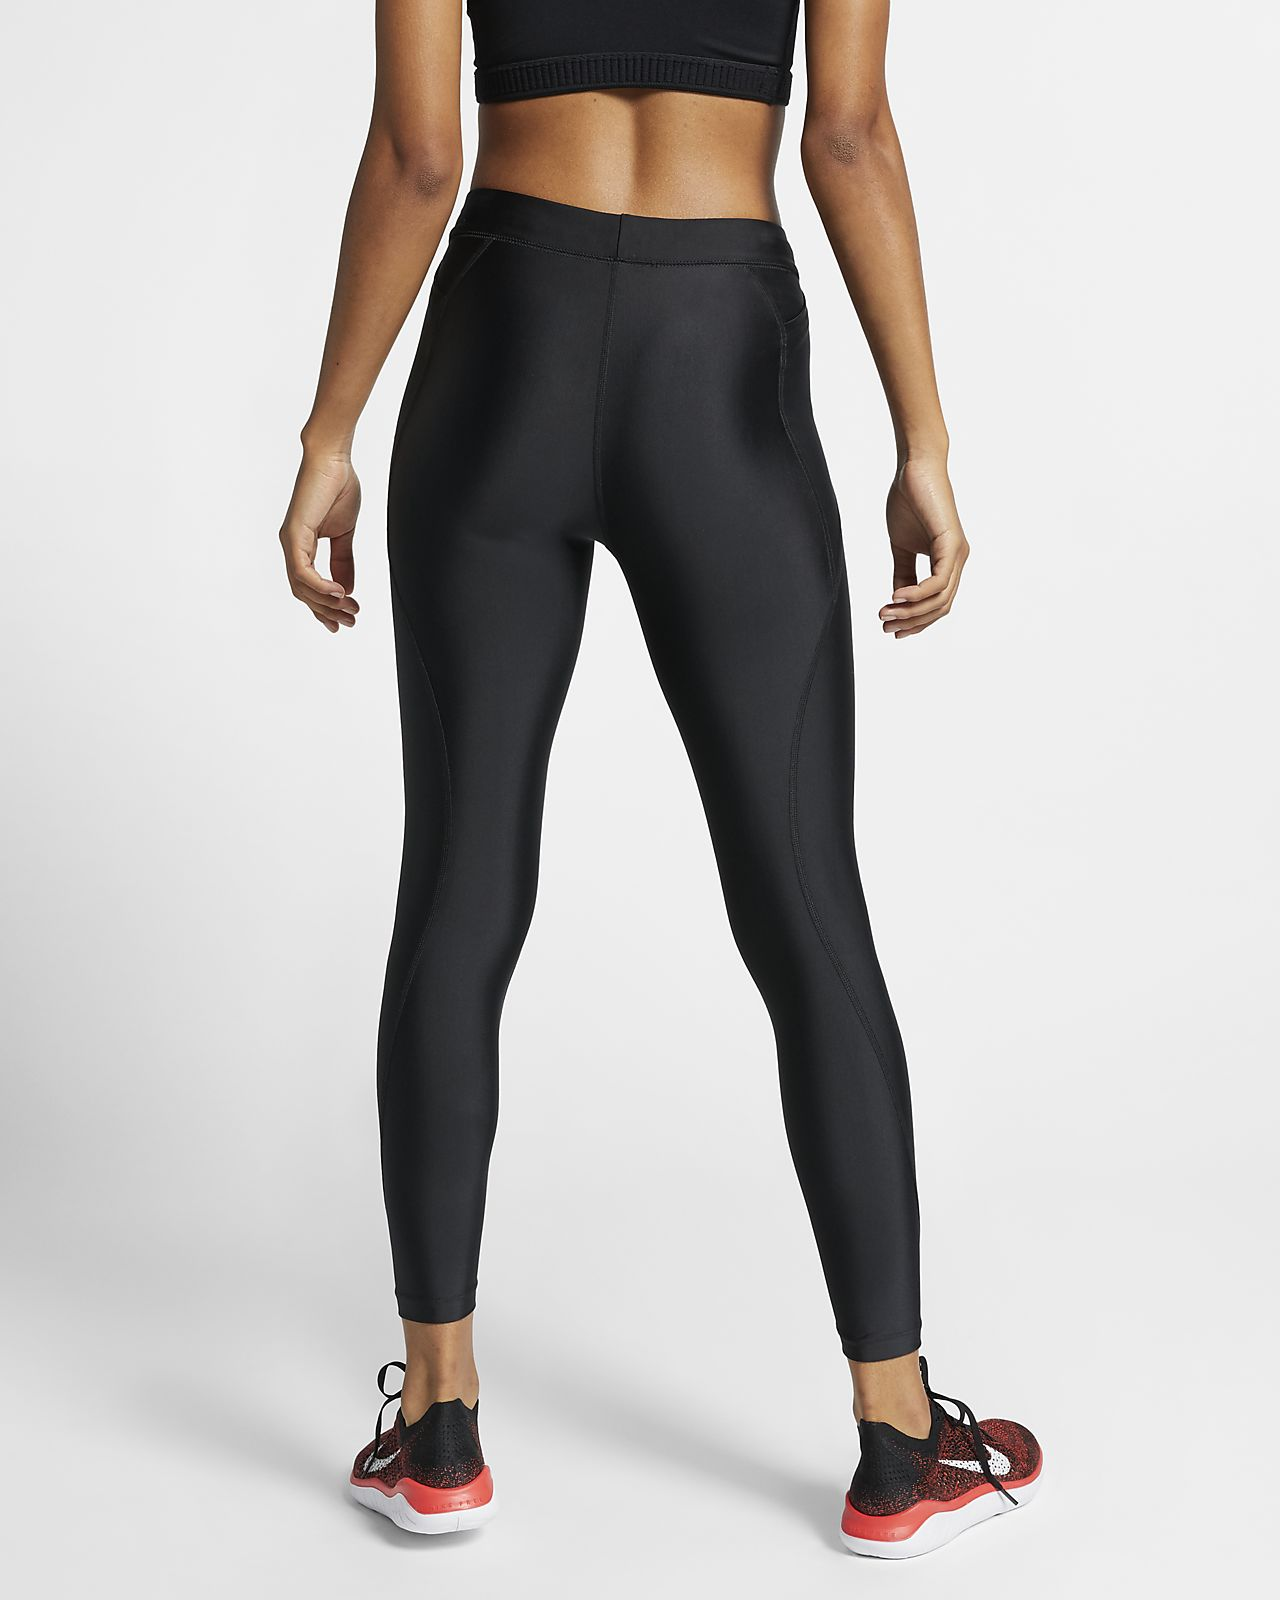 a989ae8dbaef42 Nike Speed Women's 7/8 Tights. Nike.com AU